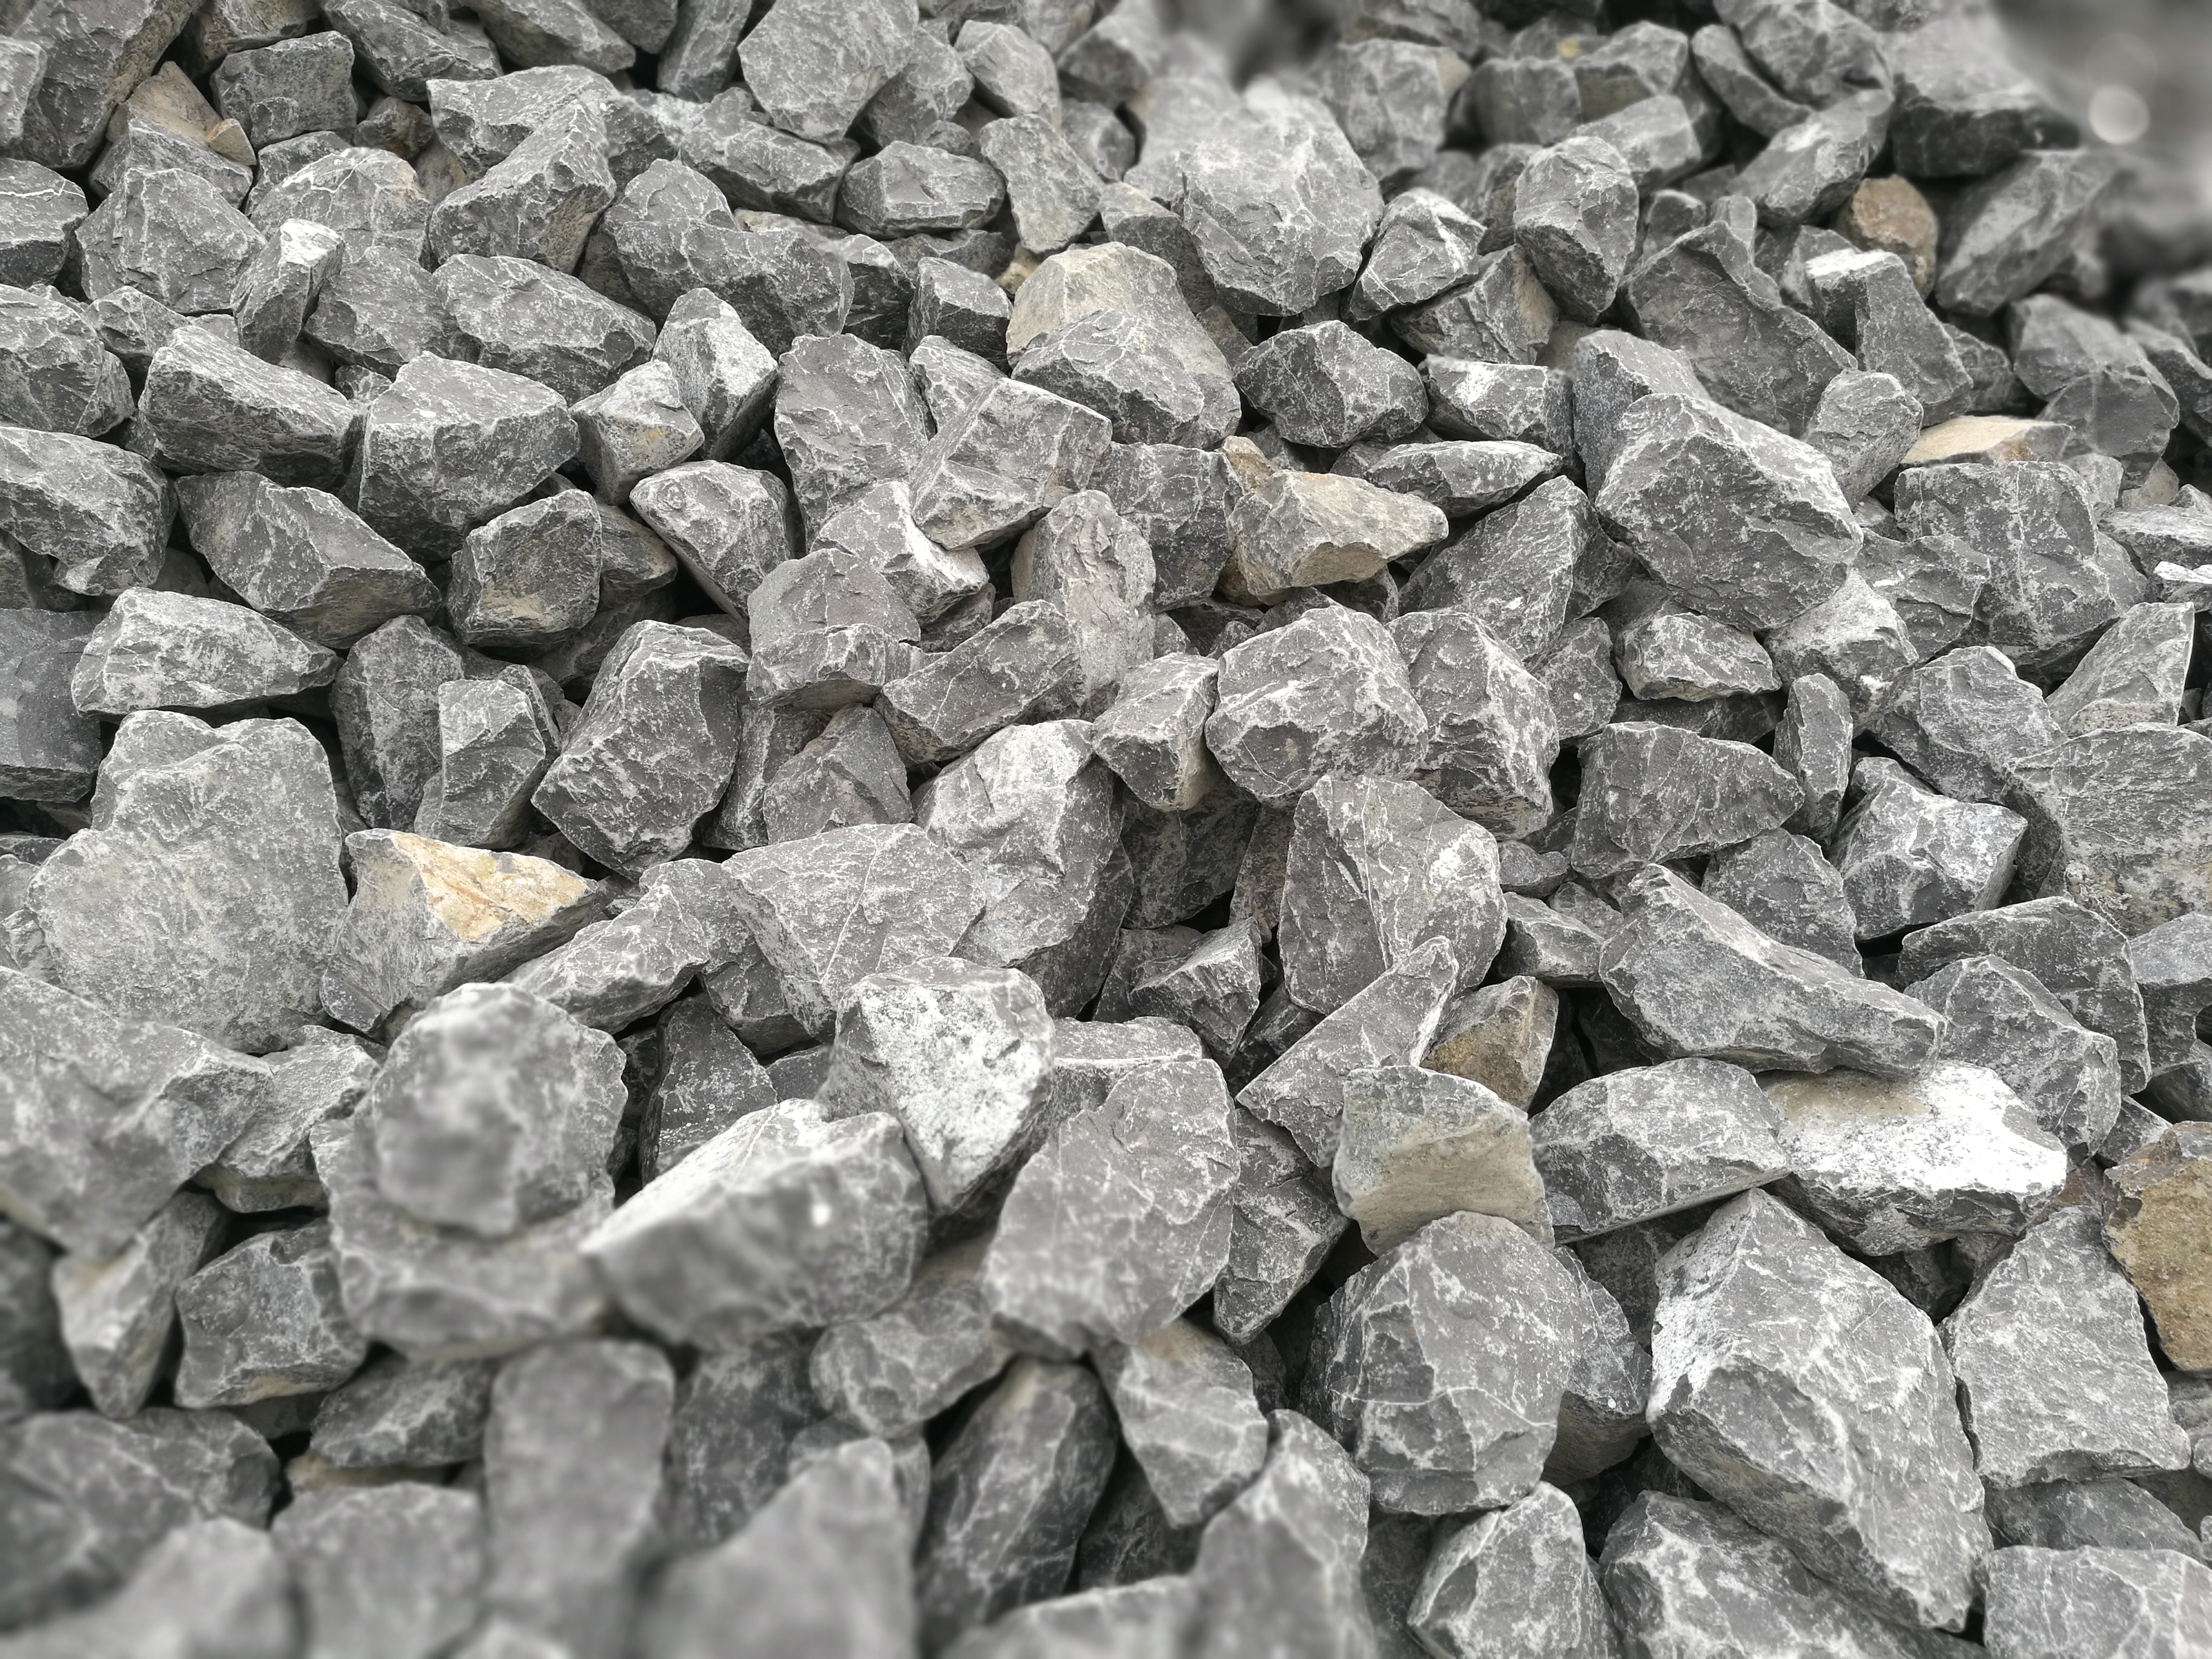 Comparison of main differences between electric arc furnace (submerged arc furnace) and slag furnace for producing rock mineral wool